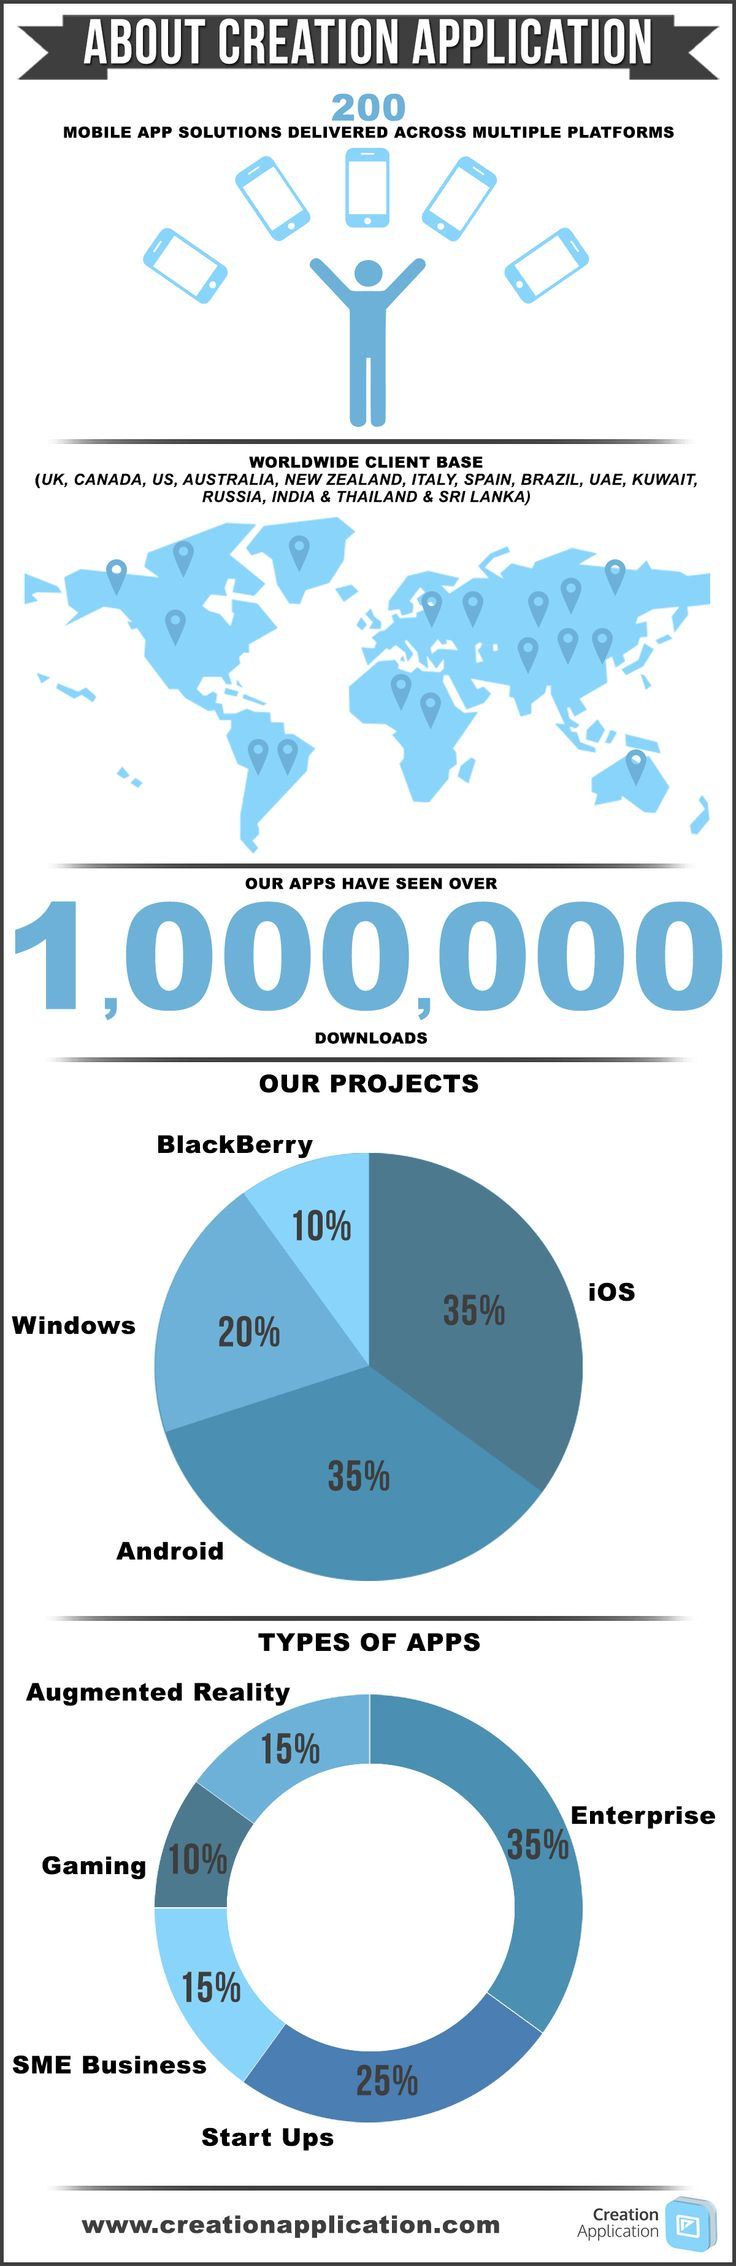 About Creation Application Infographic